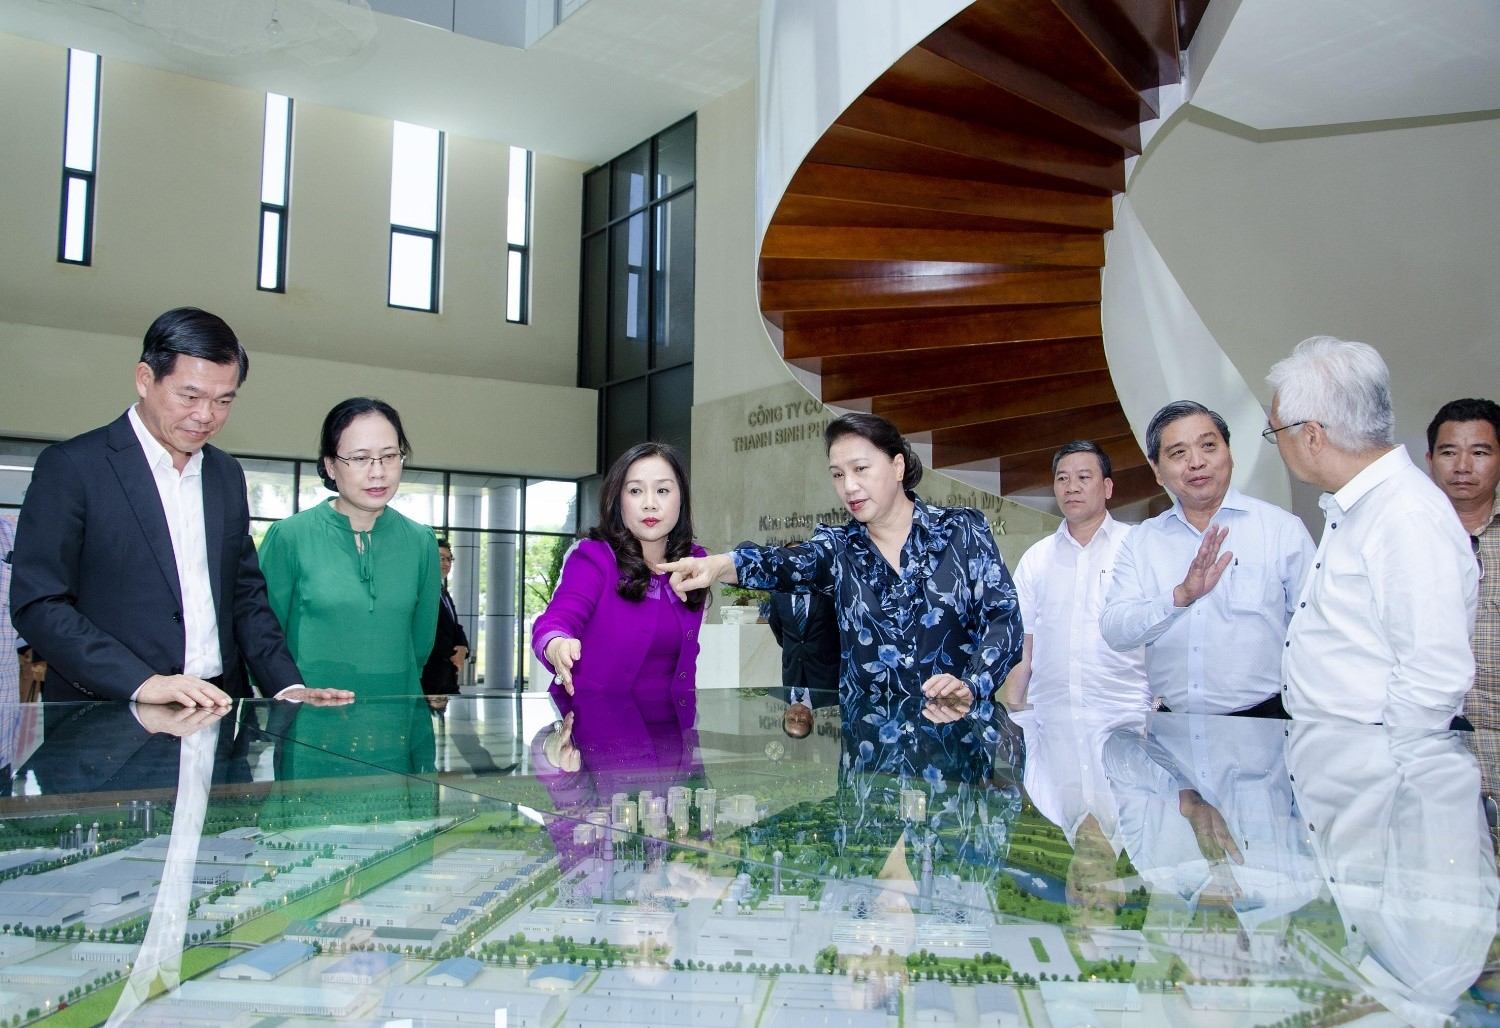 CHAIRWOMAN OF THE NATIONAL ASSEMBLY NGUYEN THI KIM NGAN WORKED WITH SAIGON NEWPORT CORPORATION AND THANH BINH PHU MY JOINT STOCK COMPANY